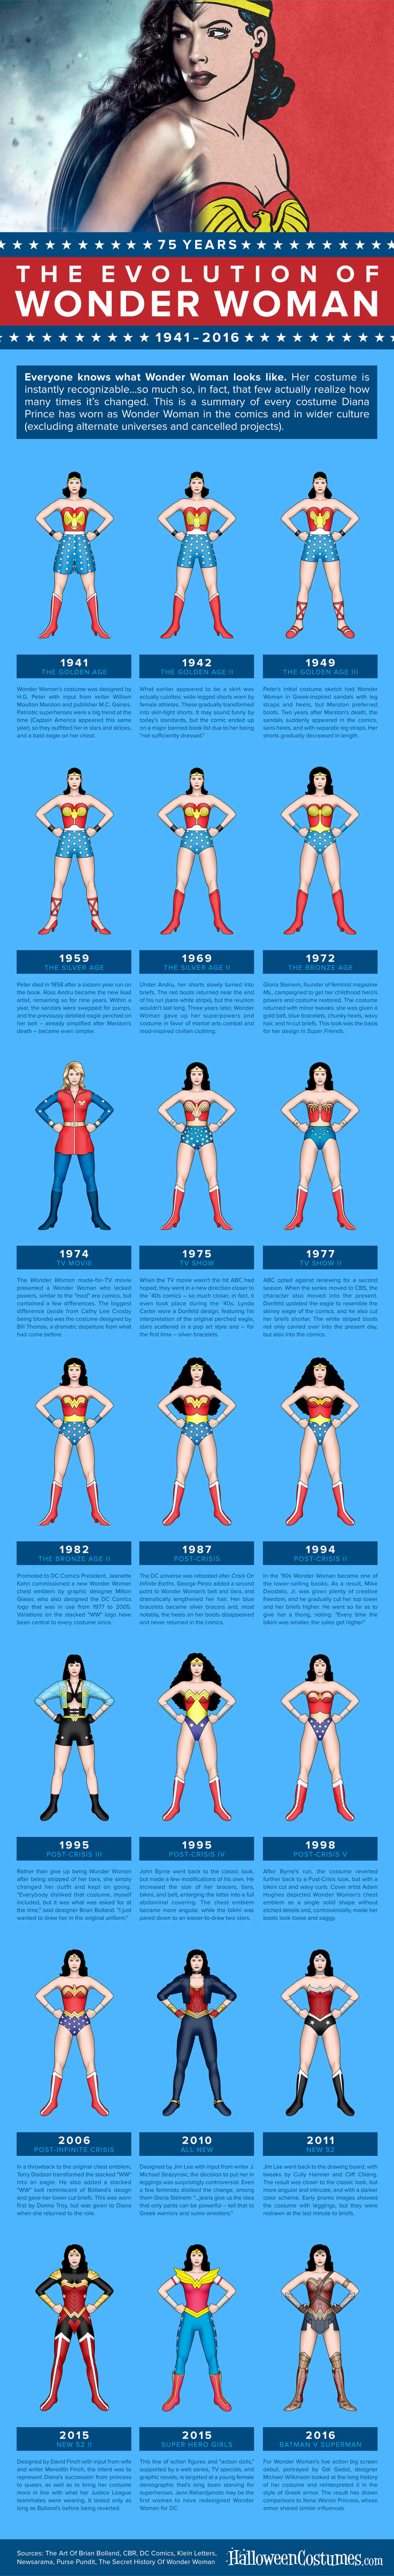 How to create a wonder woman costume-7200